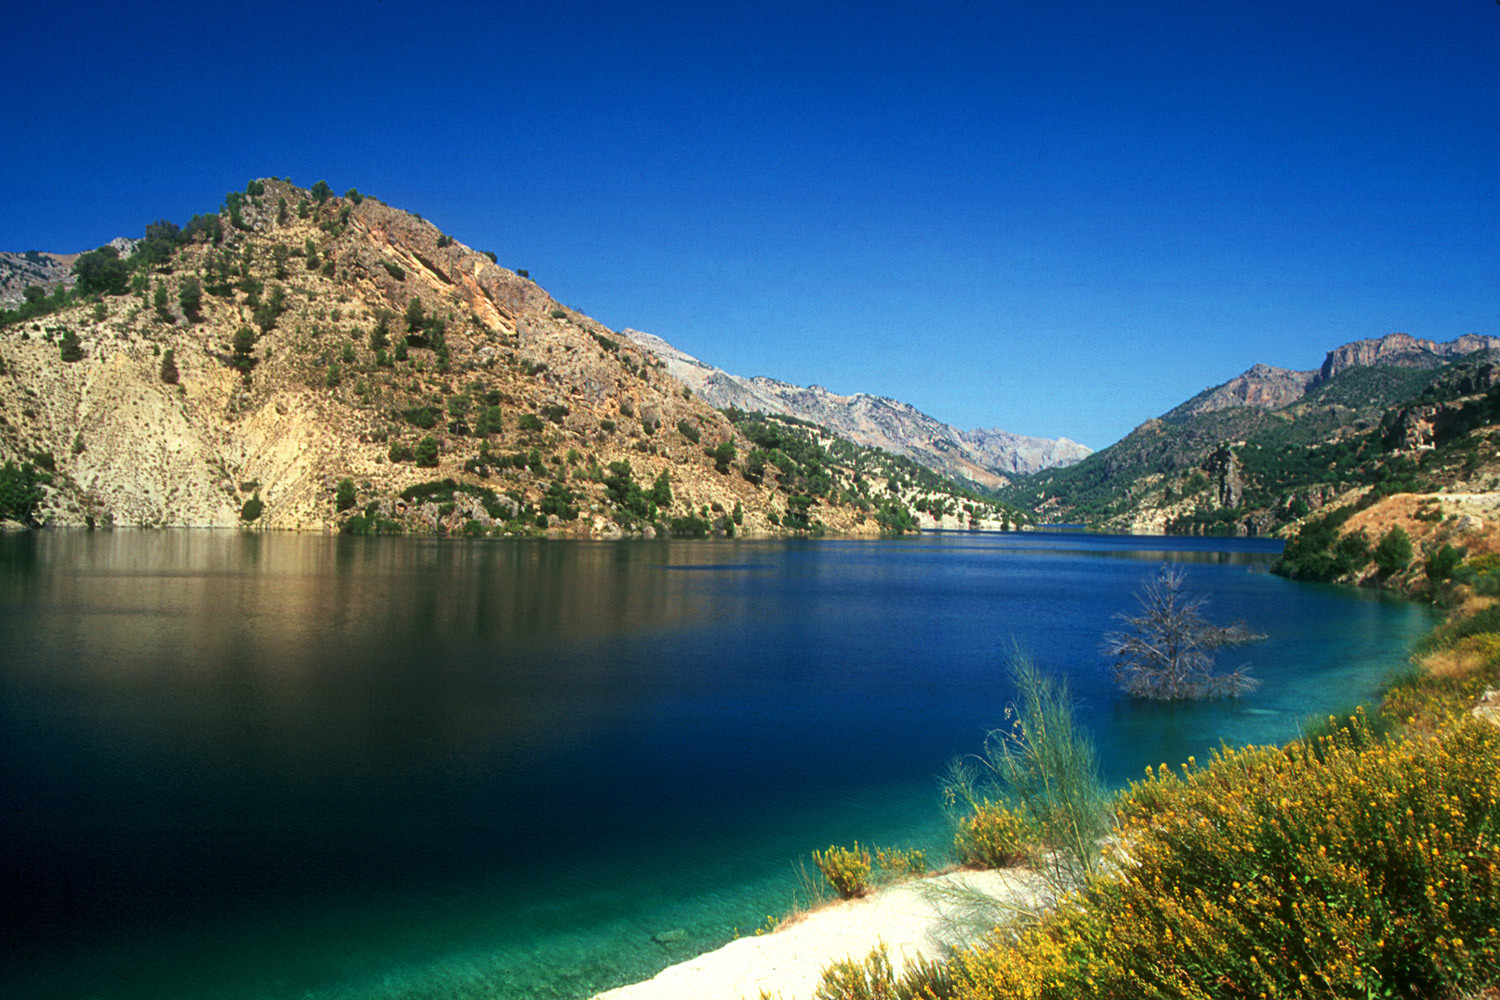 """Embalse de Portillo"" - PN Sierra de Castril, Granada - L00134"